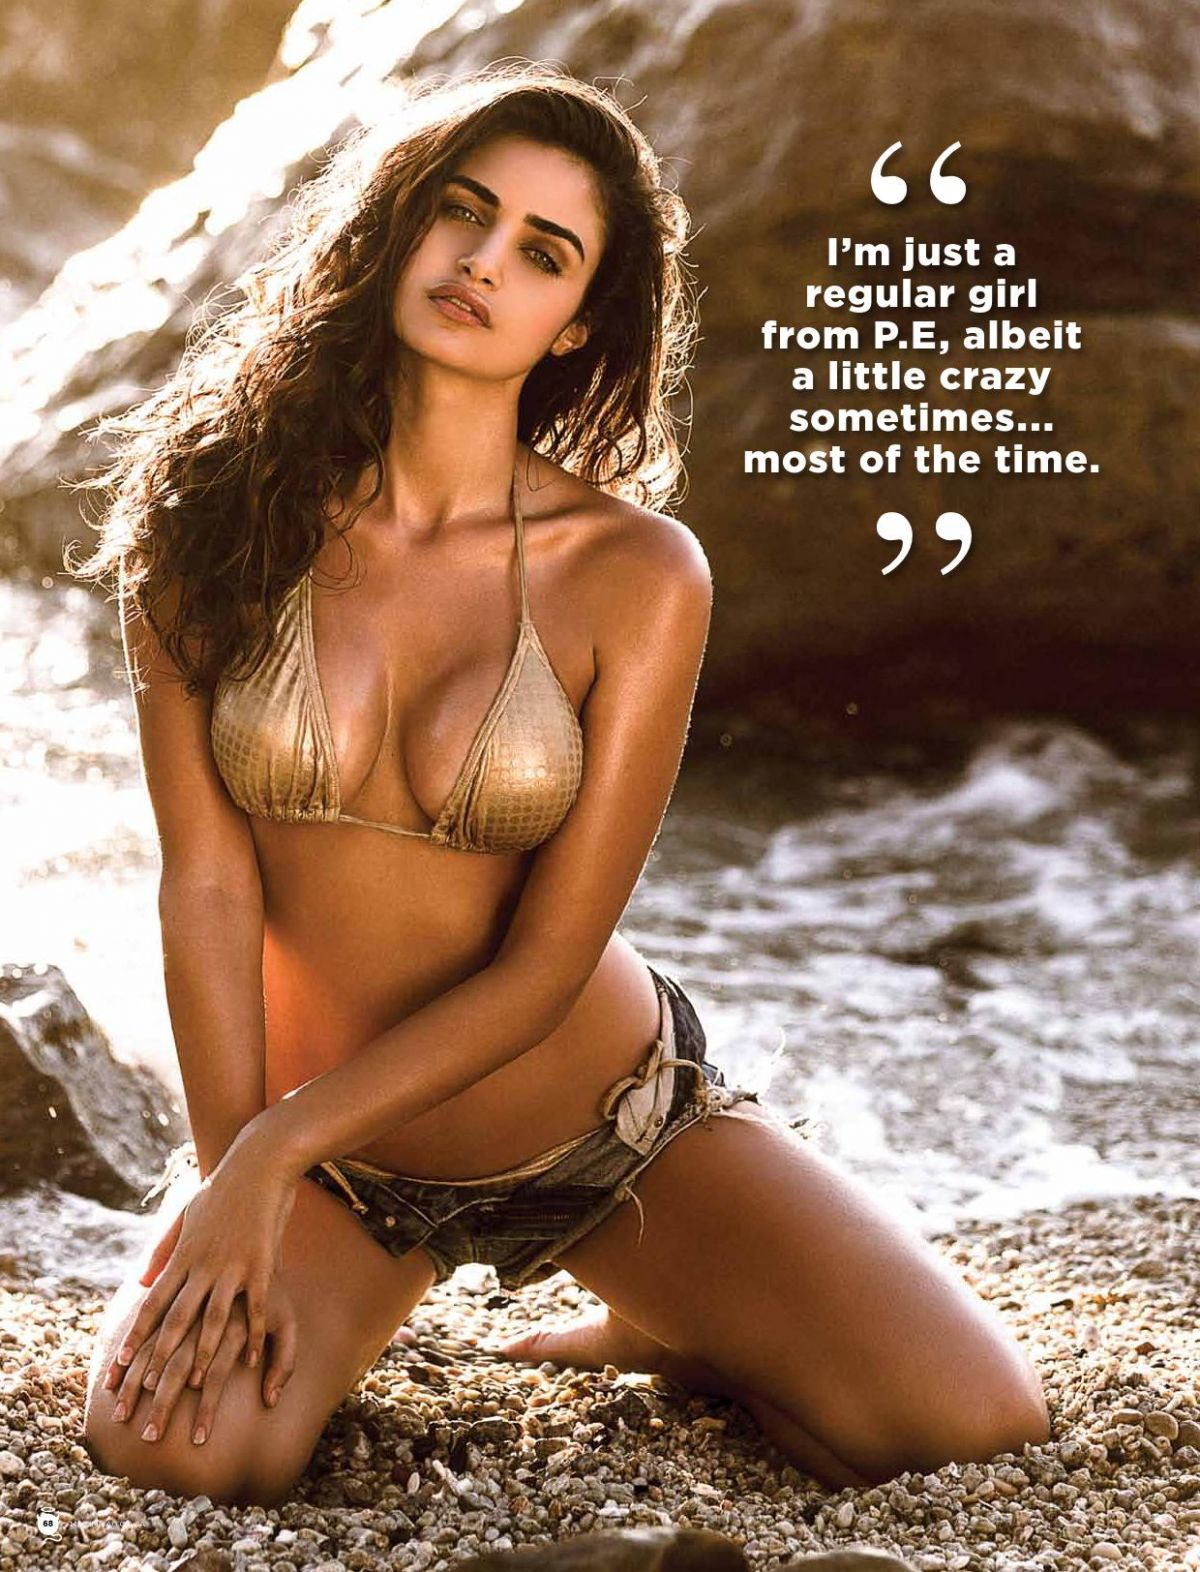 GABRIELLA DEMETRIADES in Maxim Magazine, South Africa March 2014 Issue